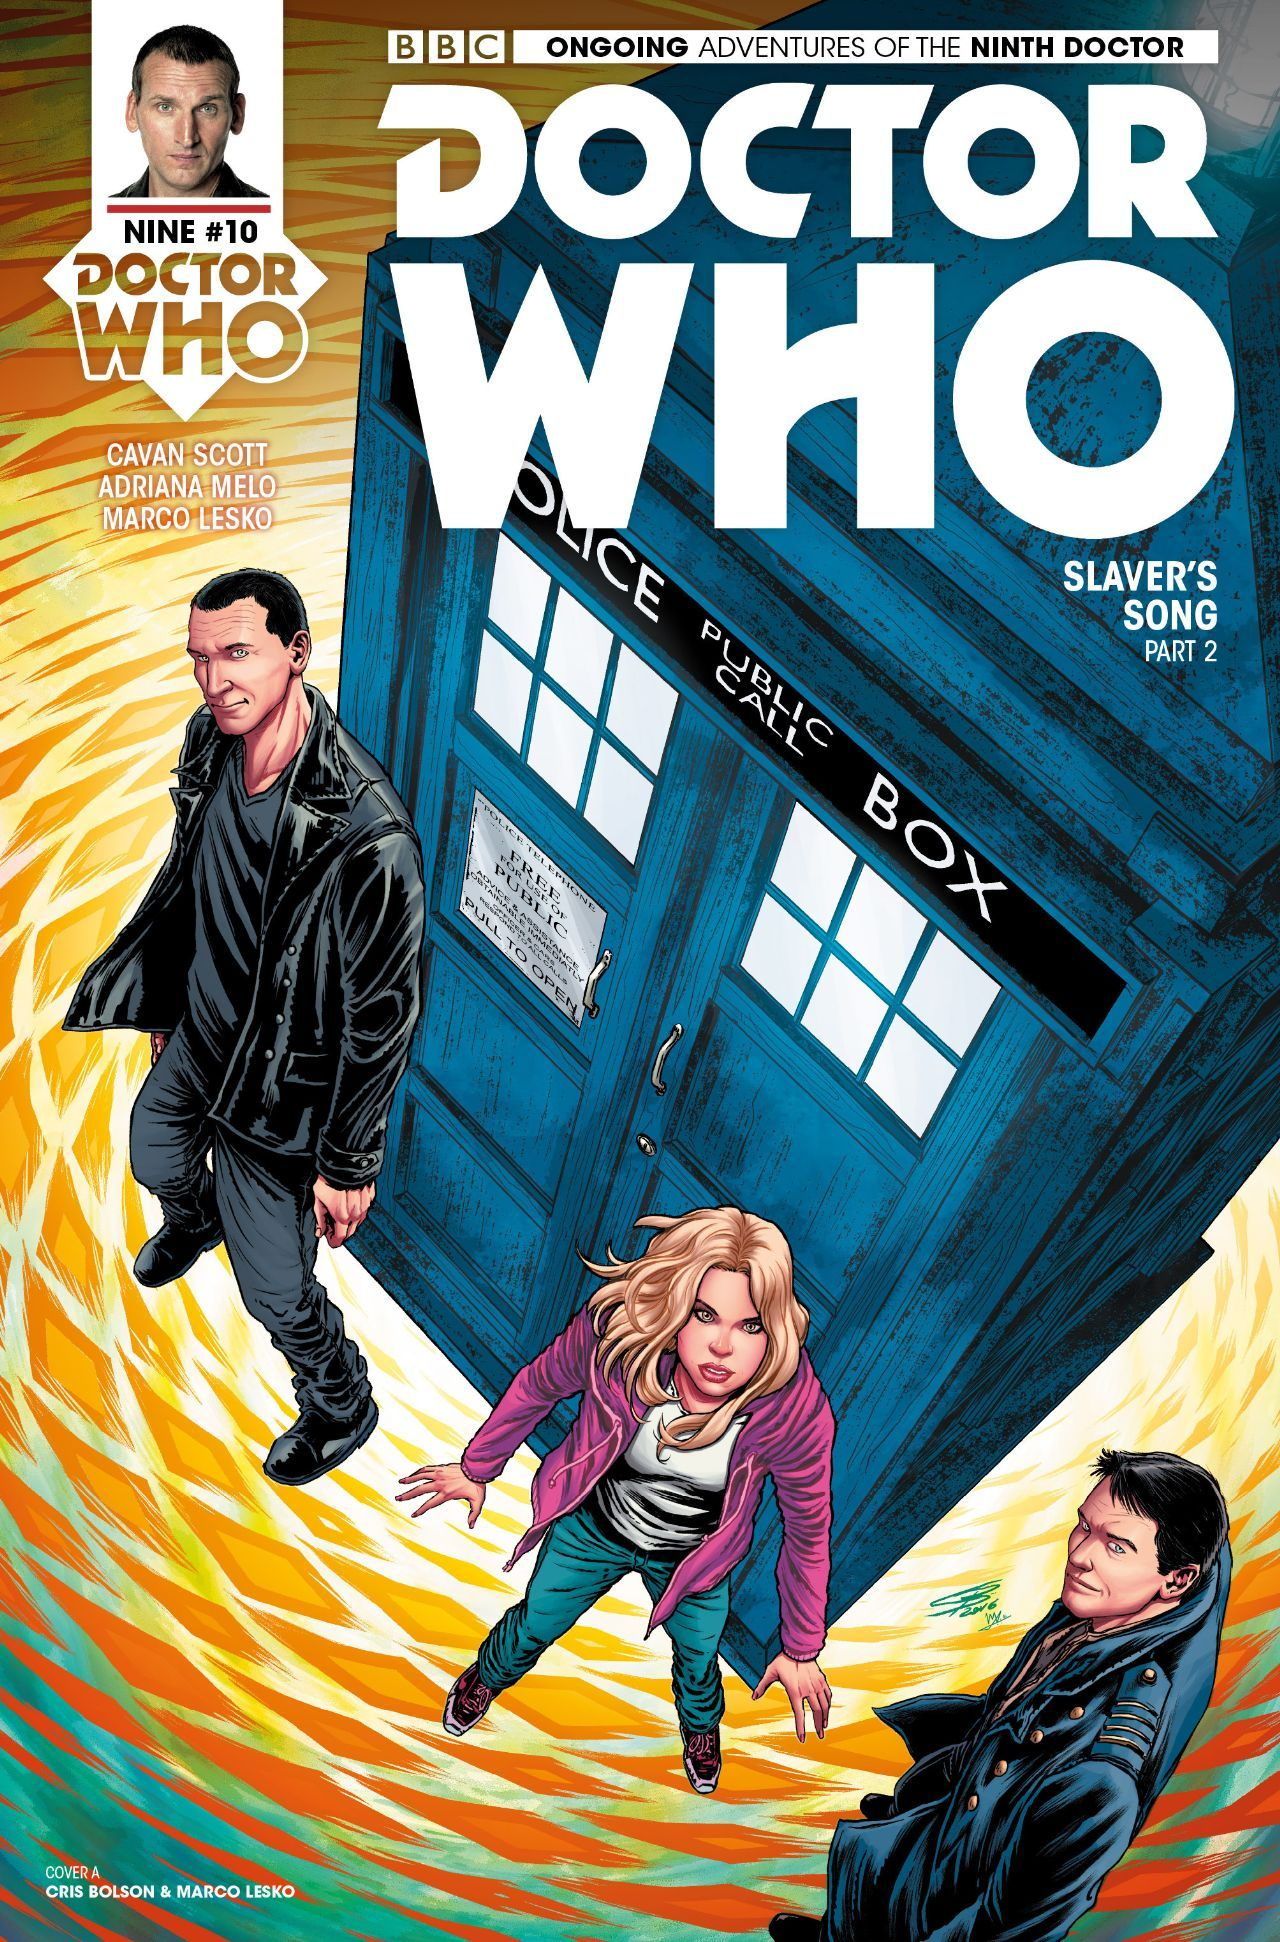 Doctor Who: The Ninth Doctor #2.10 #TitanComics @titancomics @comicstitan #DoctorWho #TheNinthDoctor (Cover Artist: Cris Bolson) Release Date: 3/1/2017